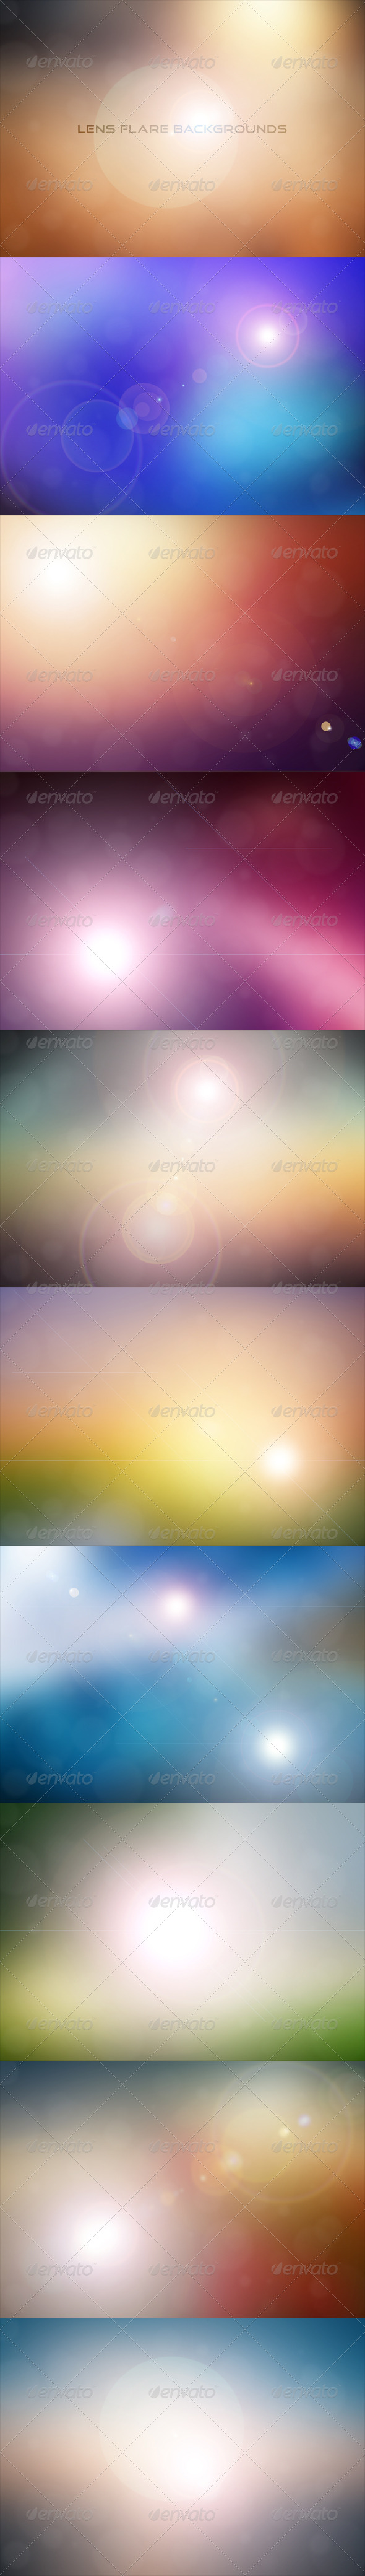 GraphicRiver Lens Flare Backgrounds 7732730